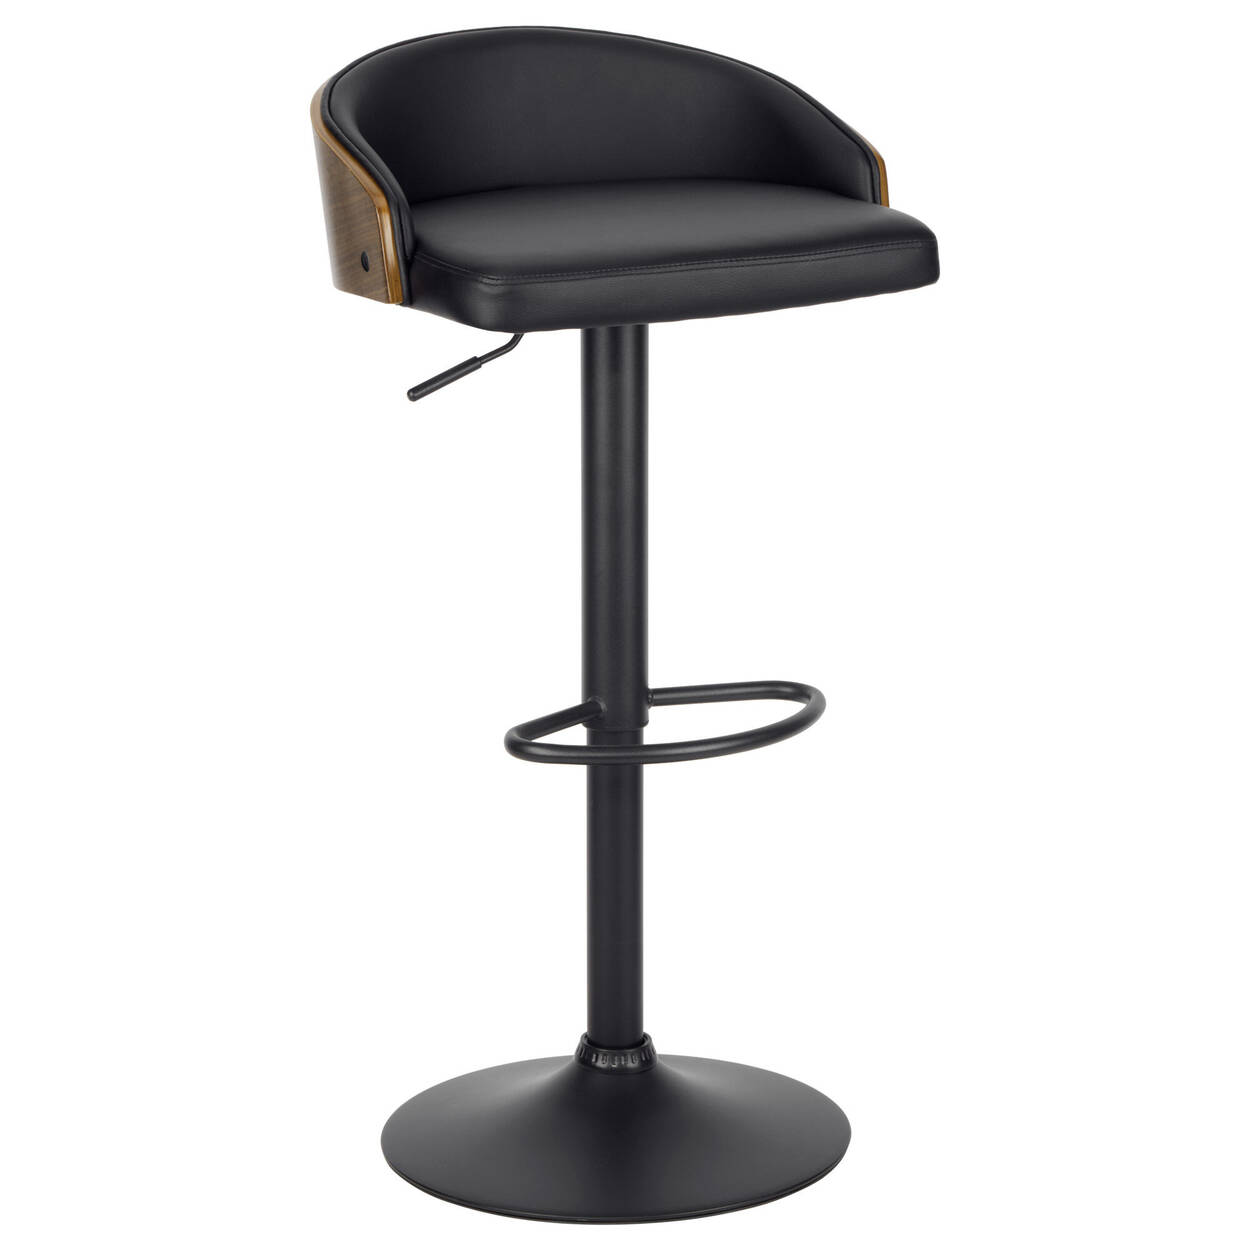 Faux Leather and Wood Adjustable Bar Stool with Metal Base